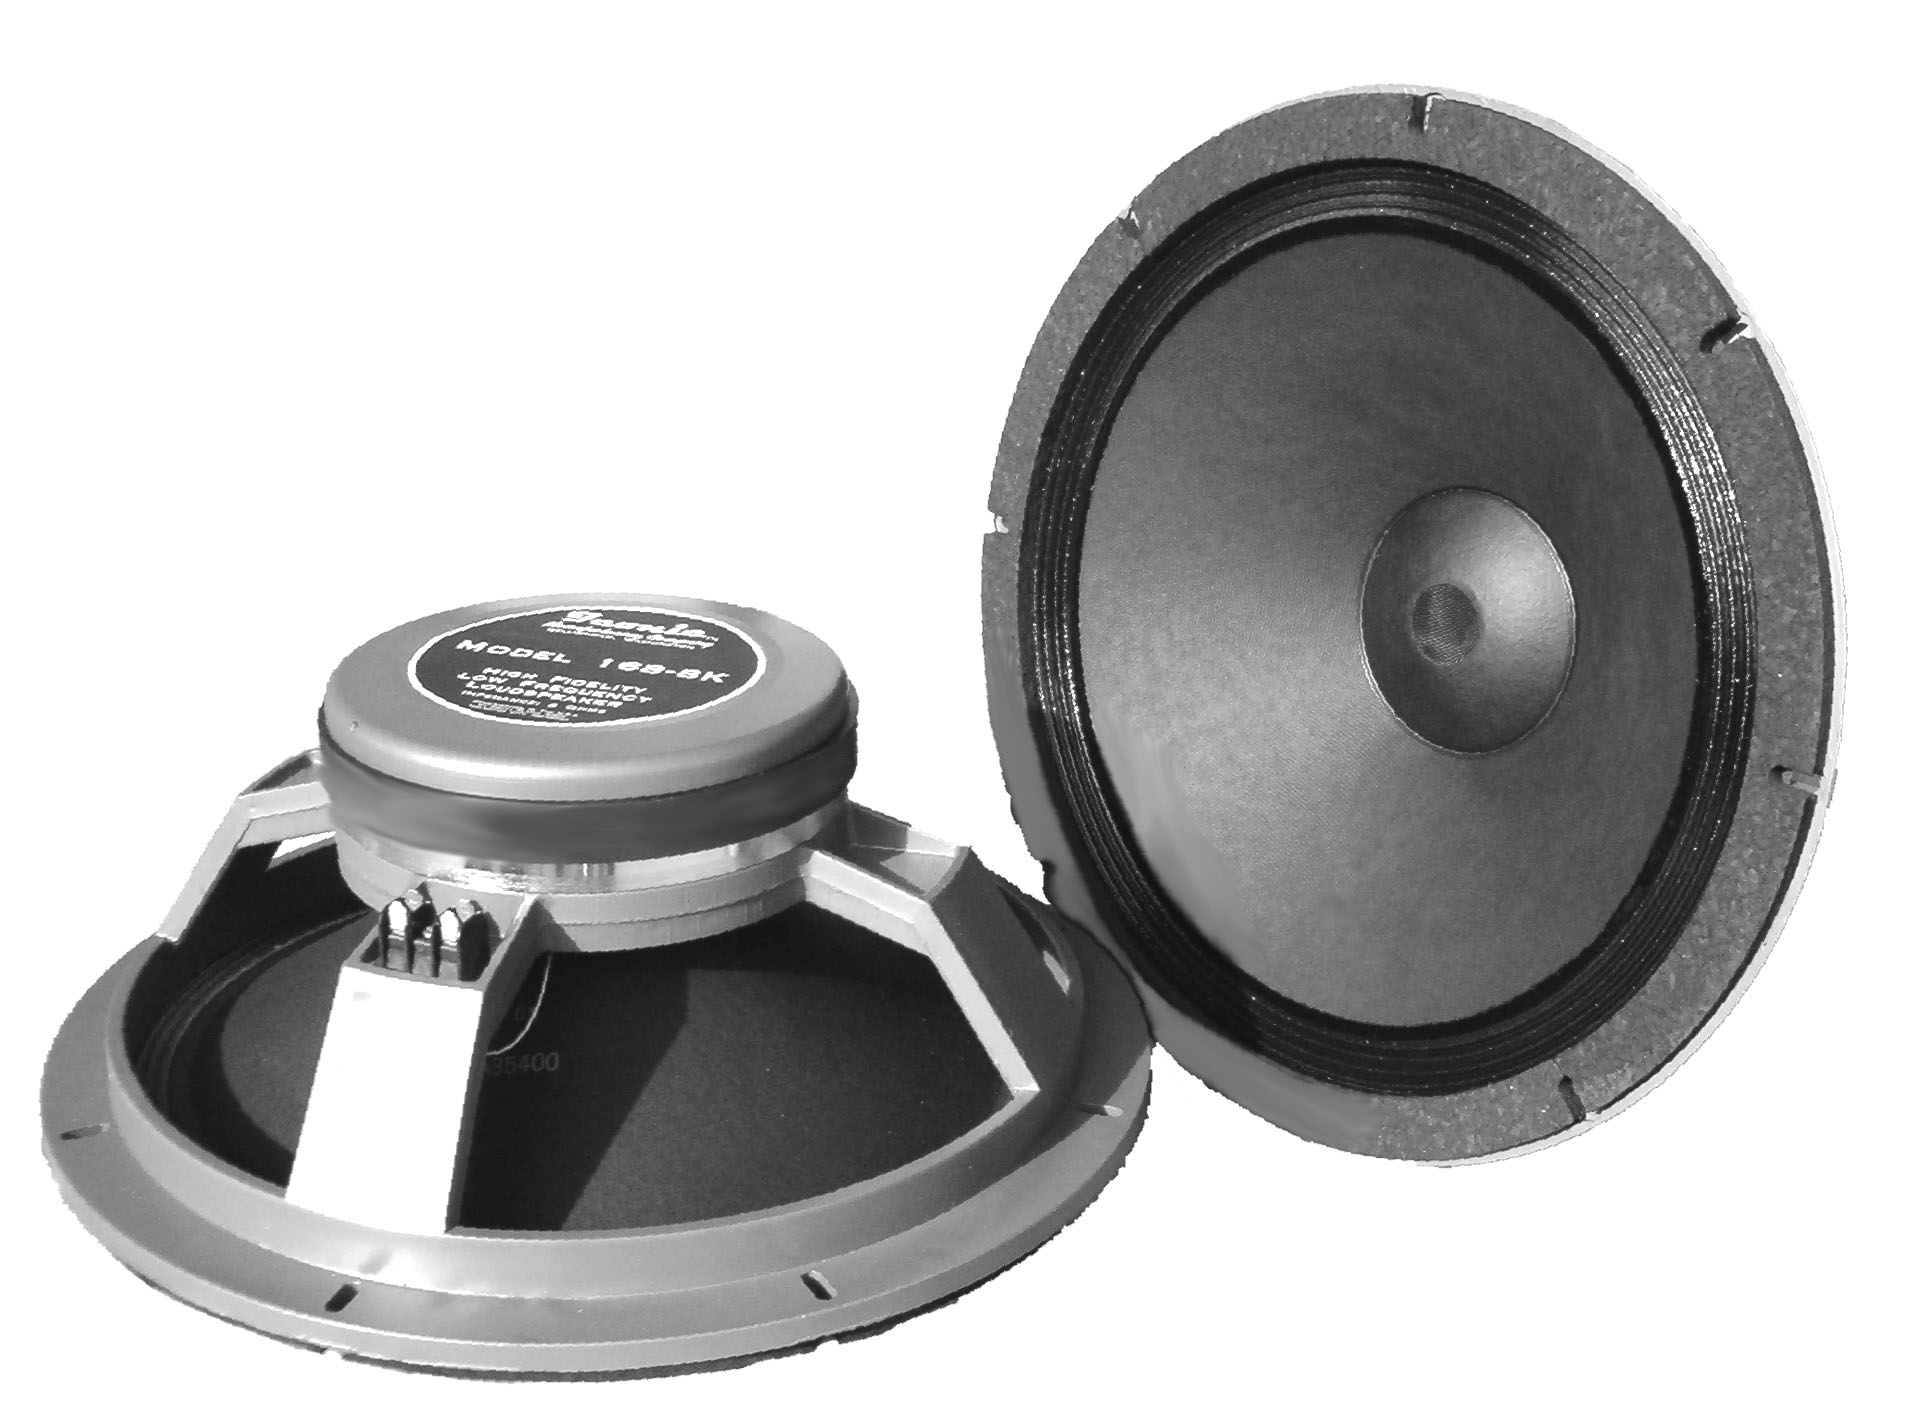 Pick the best speaker system you can afford but most importantly, pick the ones that sound right to you. The